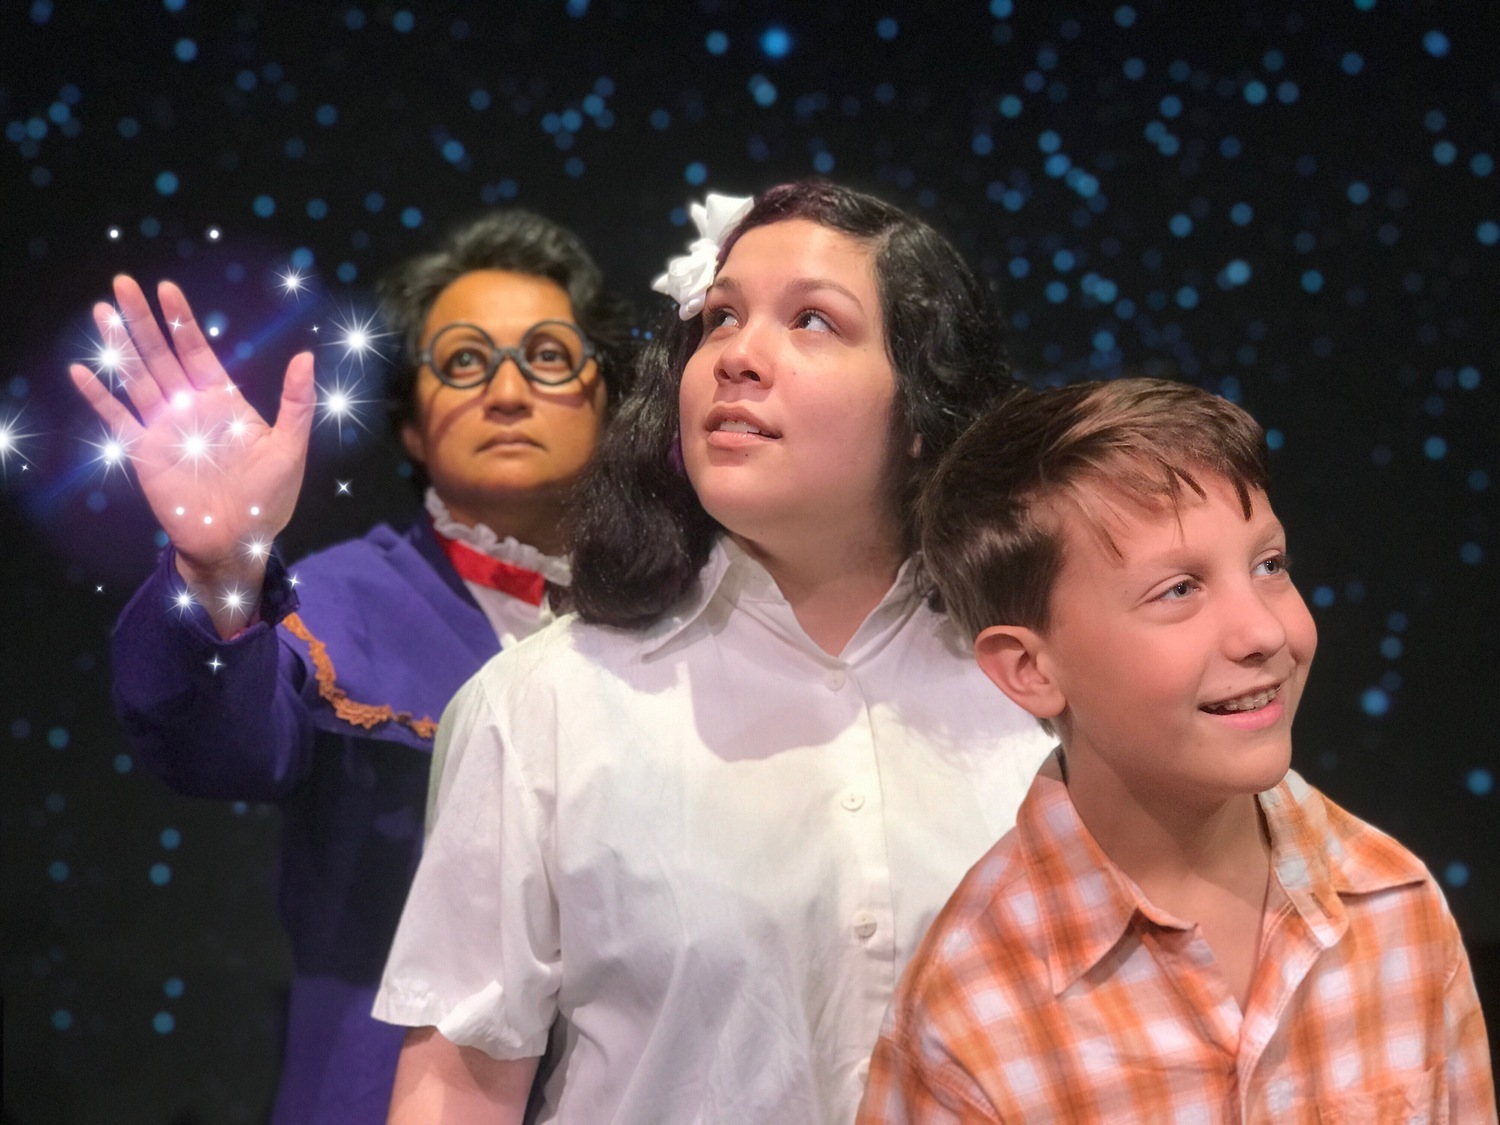 BWW Review: A WRINKLE IN TIME OPENS AT THE CITY STAGE IN KANSAS CITY at City Stage